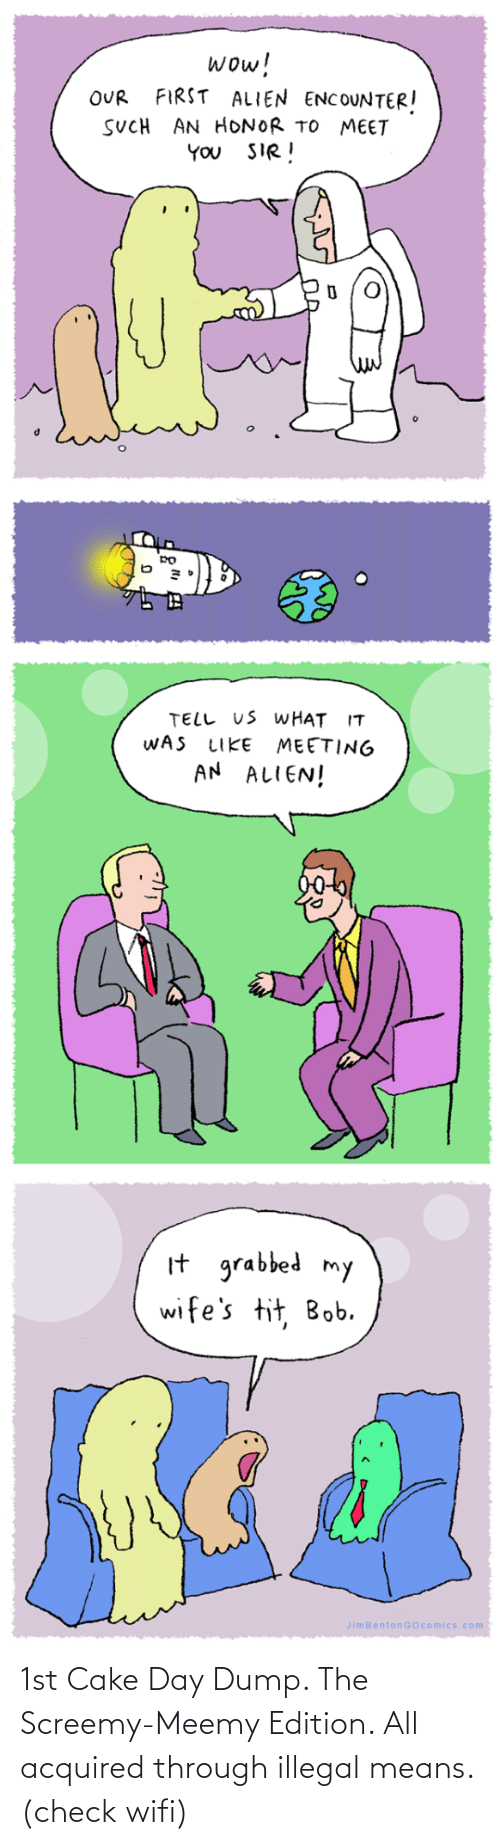 Wifi: wow!  FIRST ALIEN ENCOUNTER!  OUR  SUCH AN HONOR TO MEET  YOU SIR!  TELL US WHAT IT  WAS  MEETING  AN ALIEN!  LIKE  It grabbed my  wife's tit, Bob.  JimBentonGOcomics.com 1st Cake Day Dump. The Screemy-Meemy Edition. All acquired through illegal means. (check wifi)